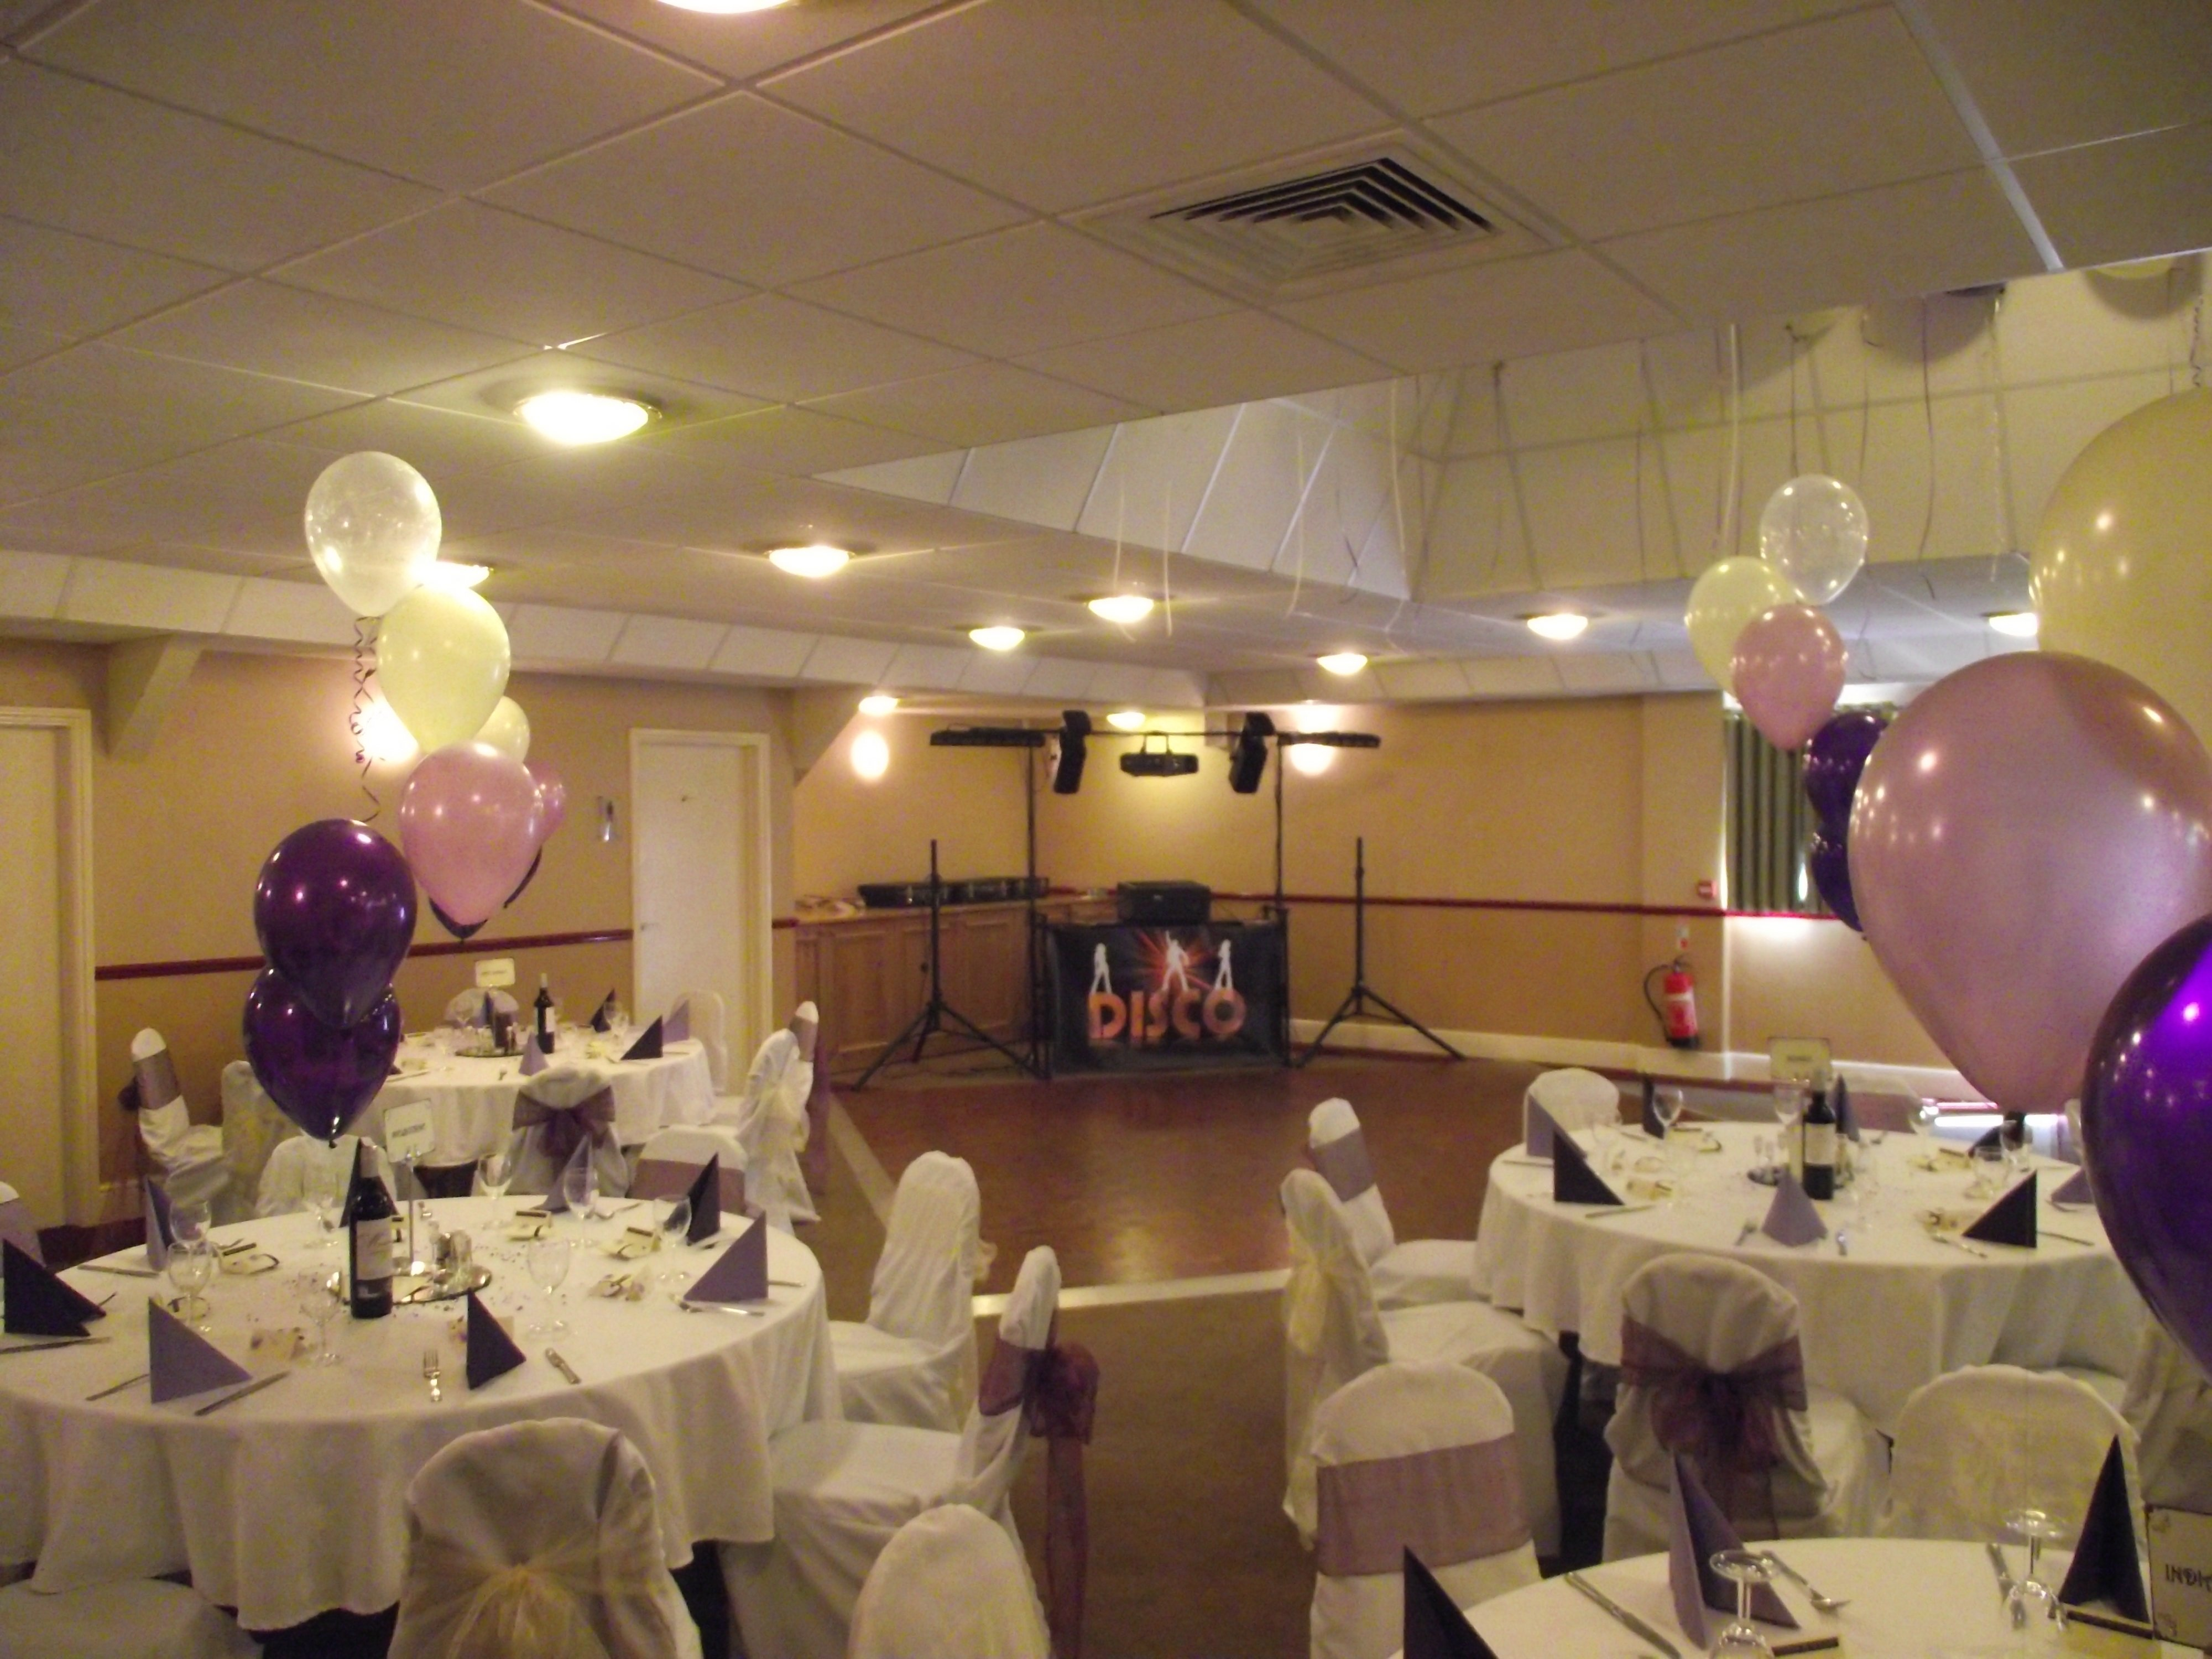 10 Most Recommended Engagement Party Ideas On A Budget engagement parties advice ideas from roundwood norwich 2021